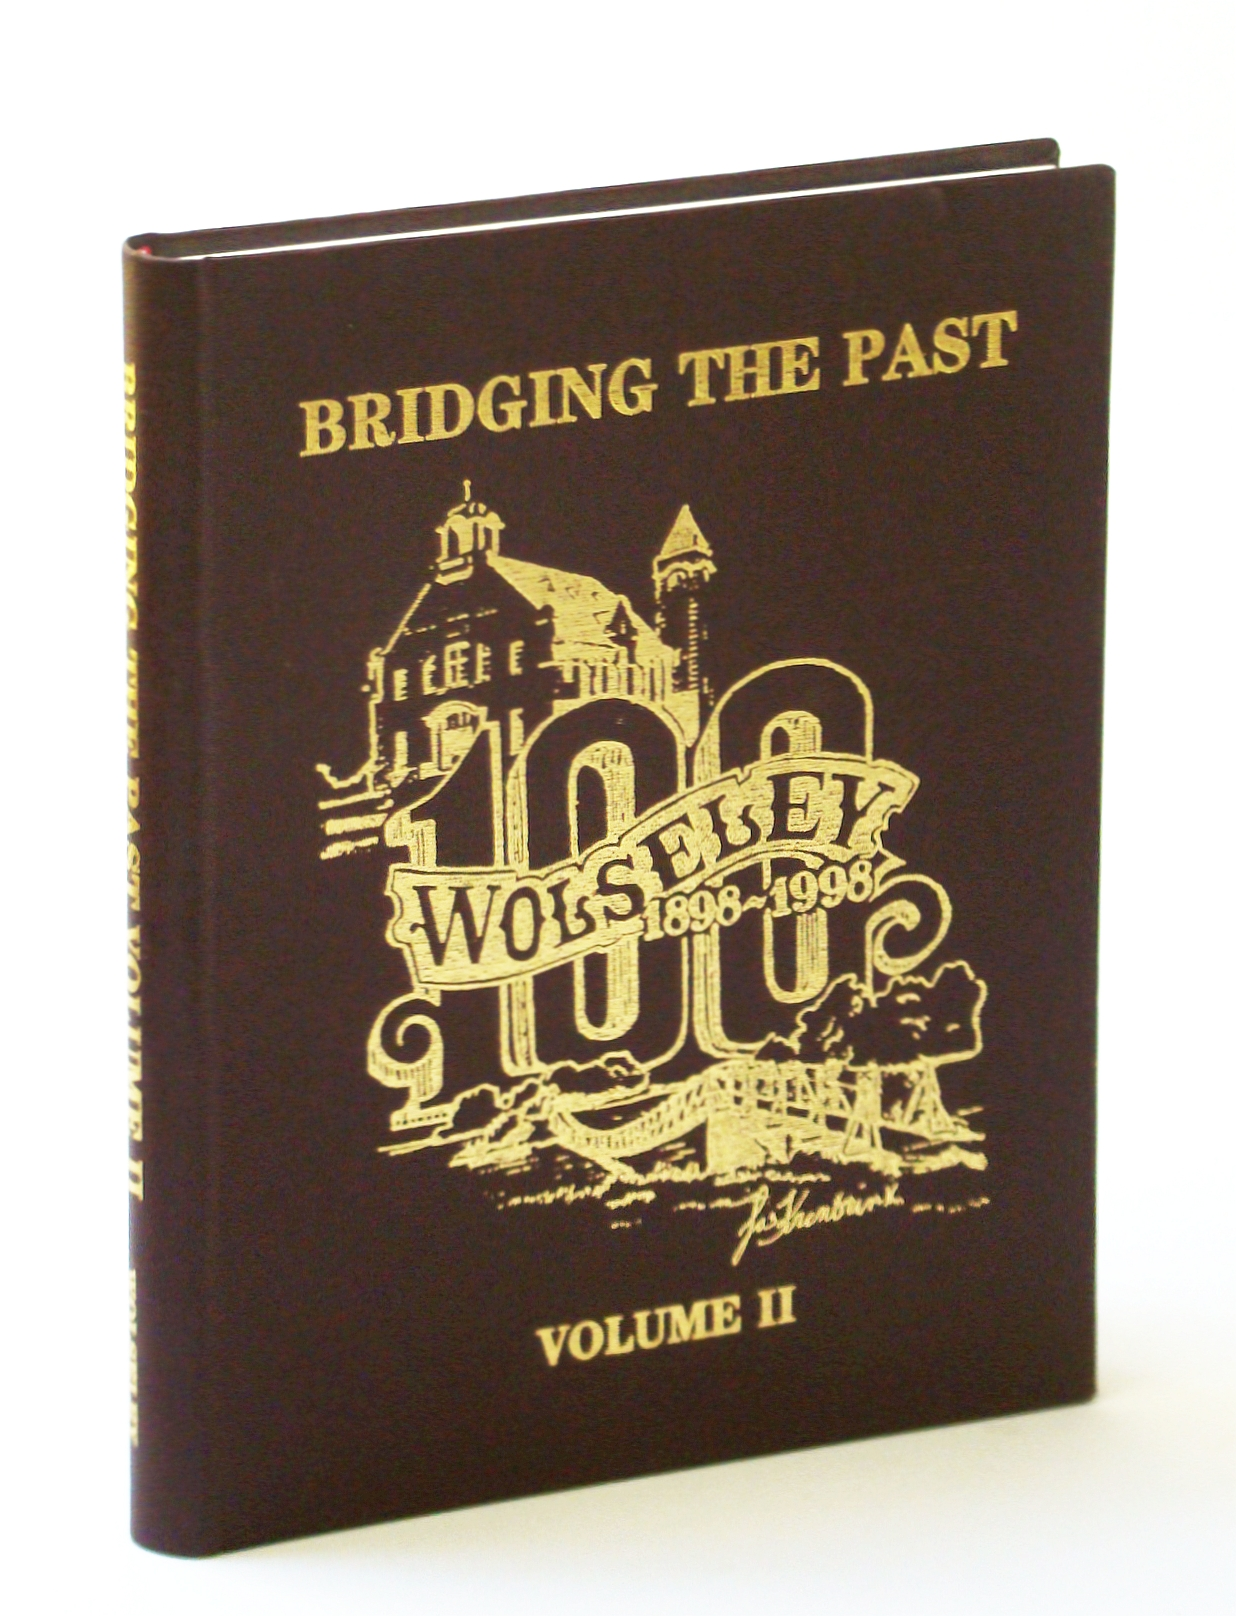 Image for Bridging the Past, Volume II (2 / Two) - Wolseley, Saskatchewan History Book